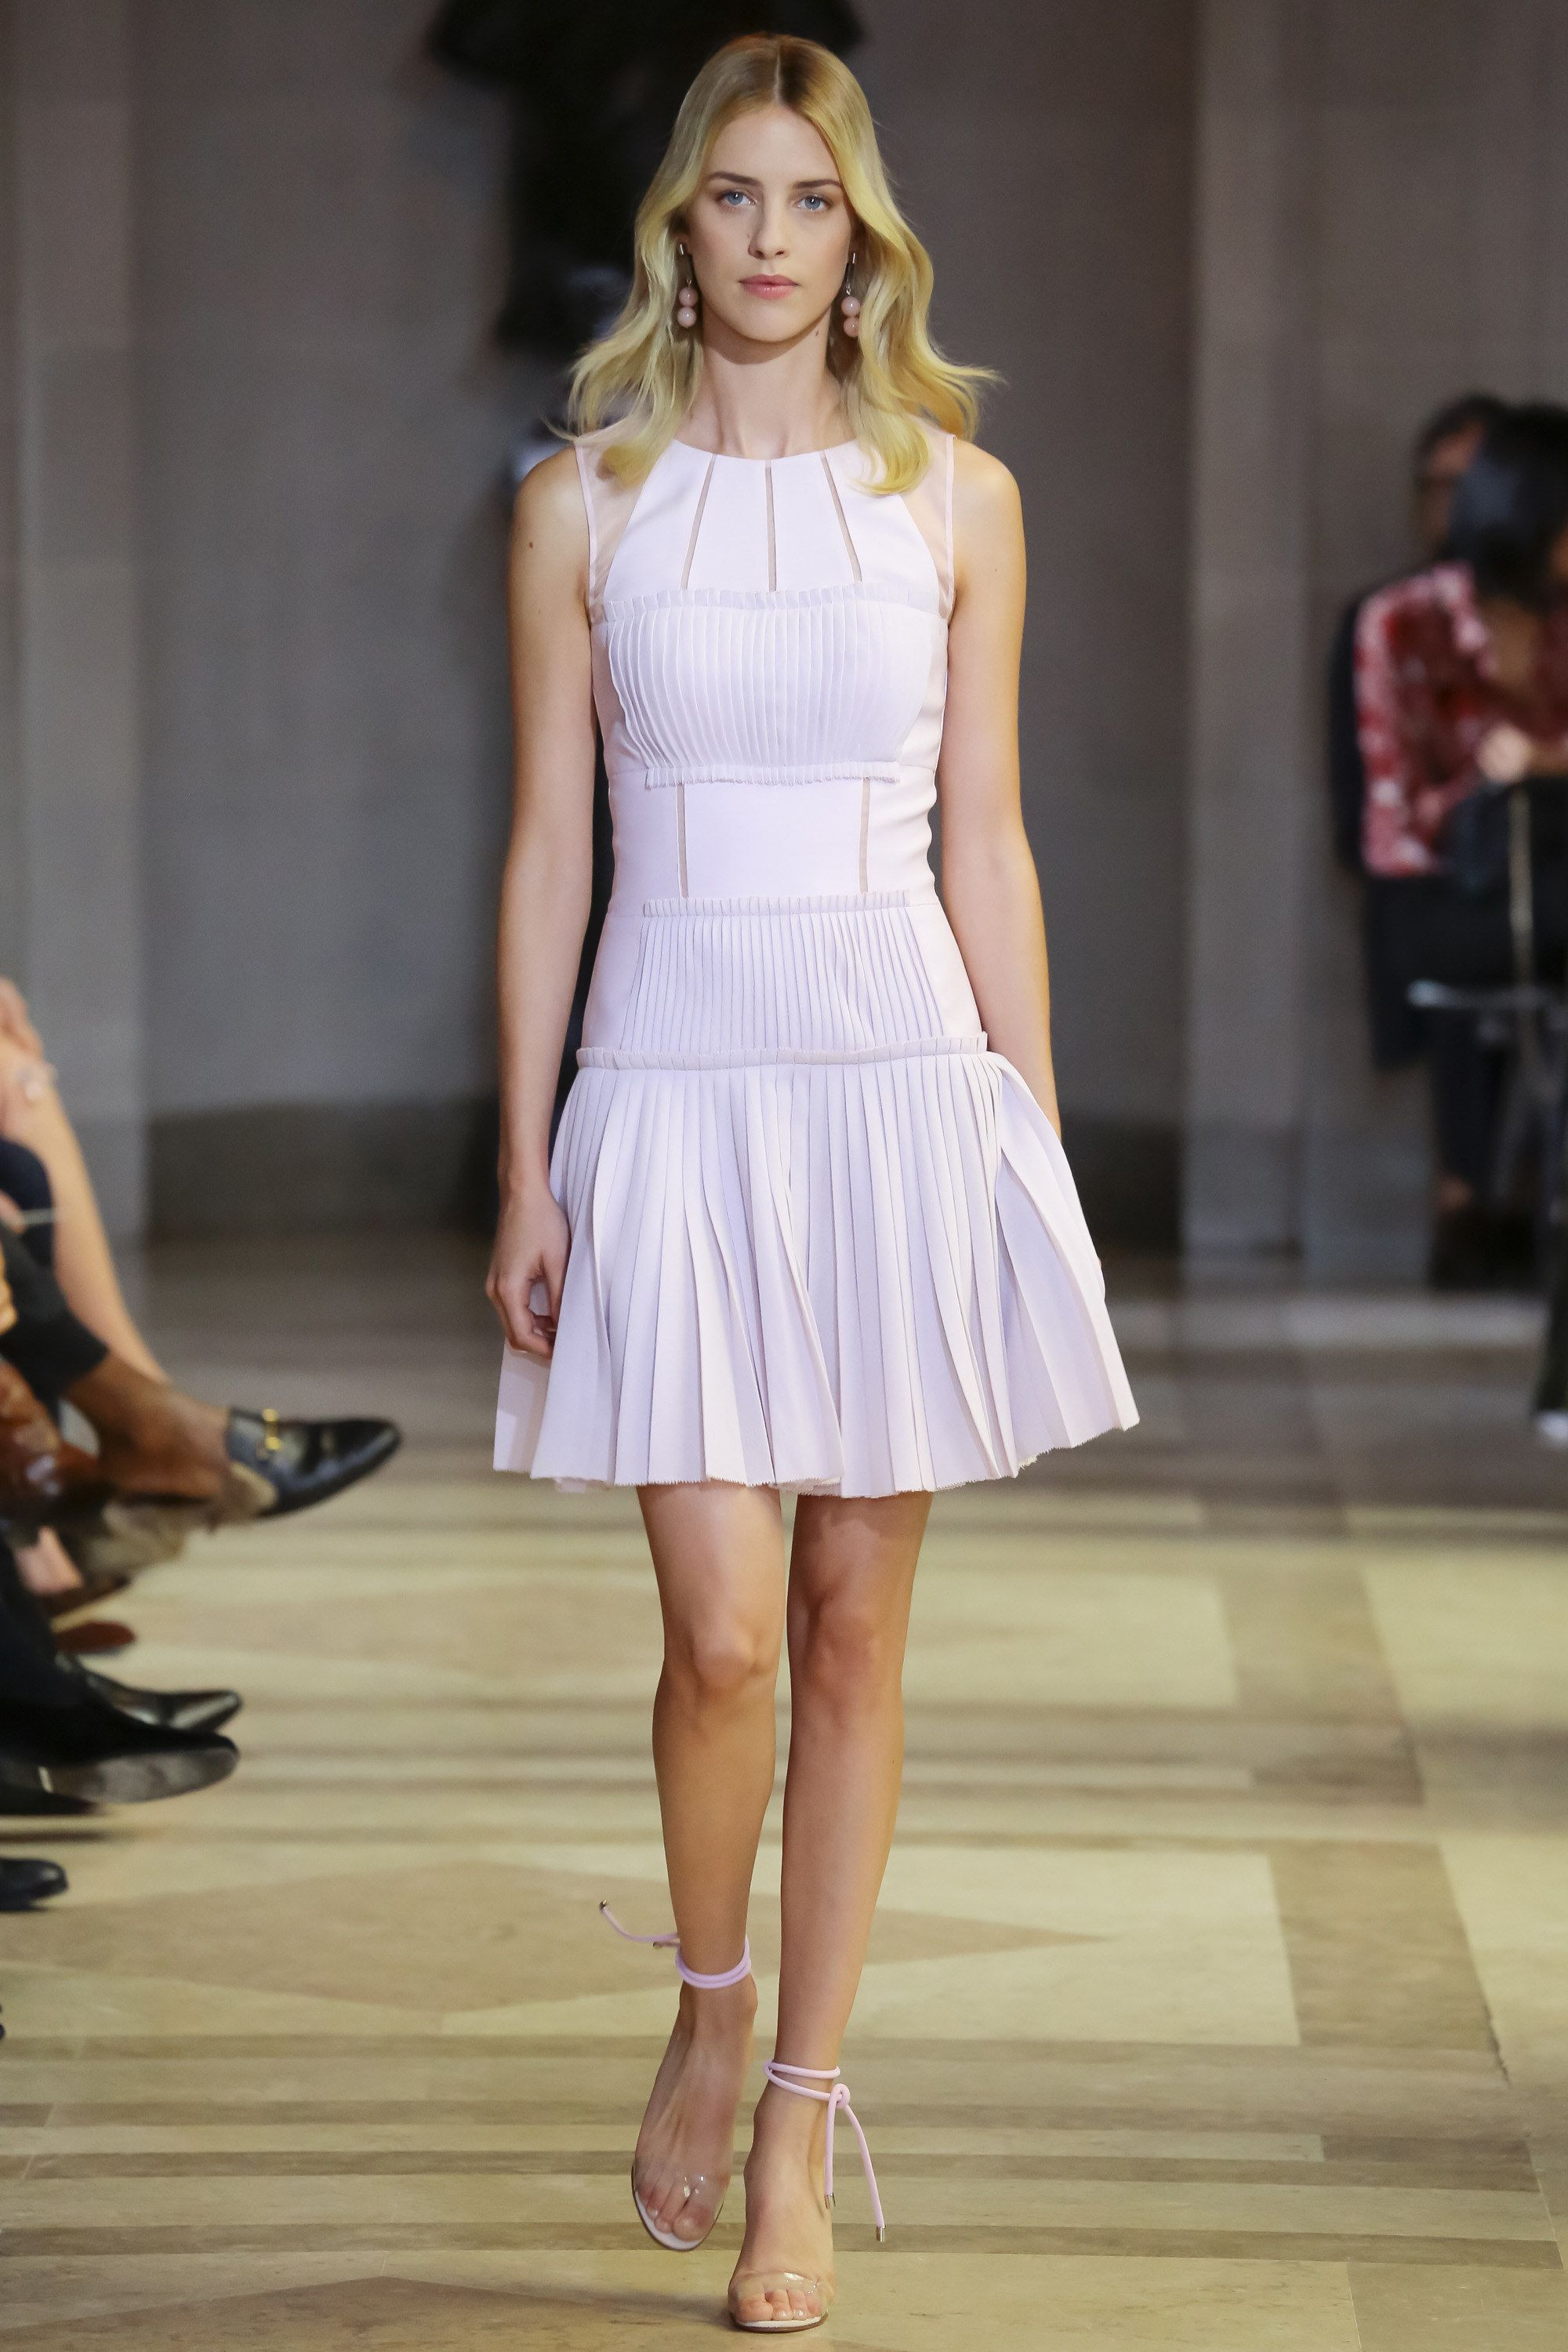 Carolina Herrera Spring 2016 Ready-to-Wear Fashion Show - Julia Frauche